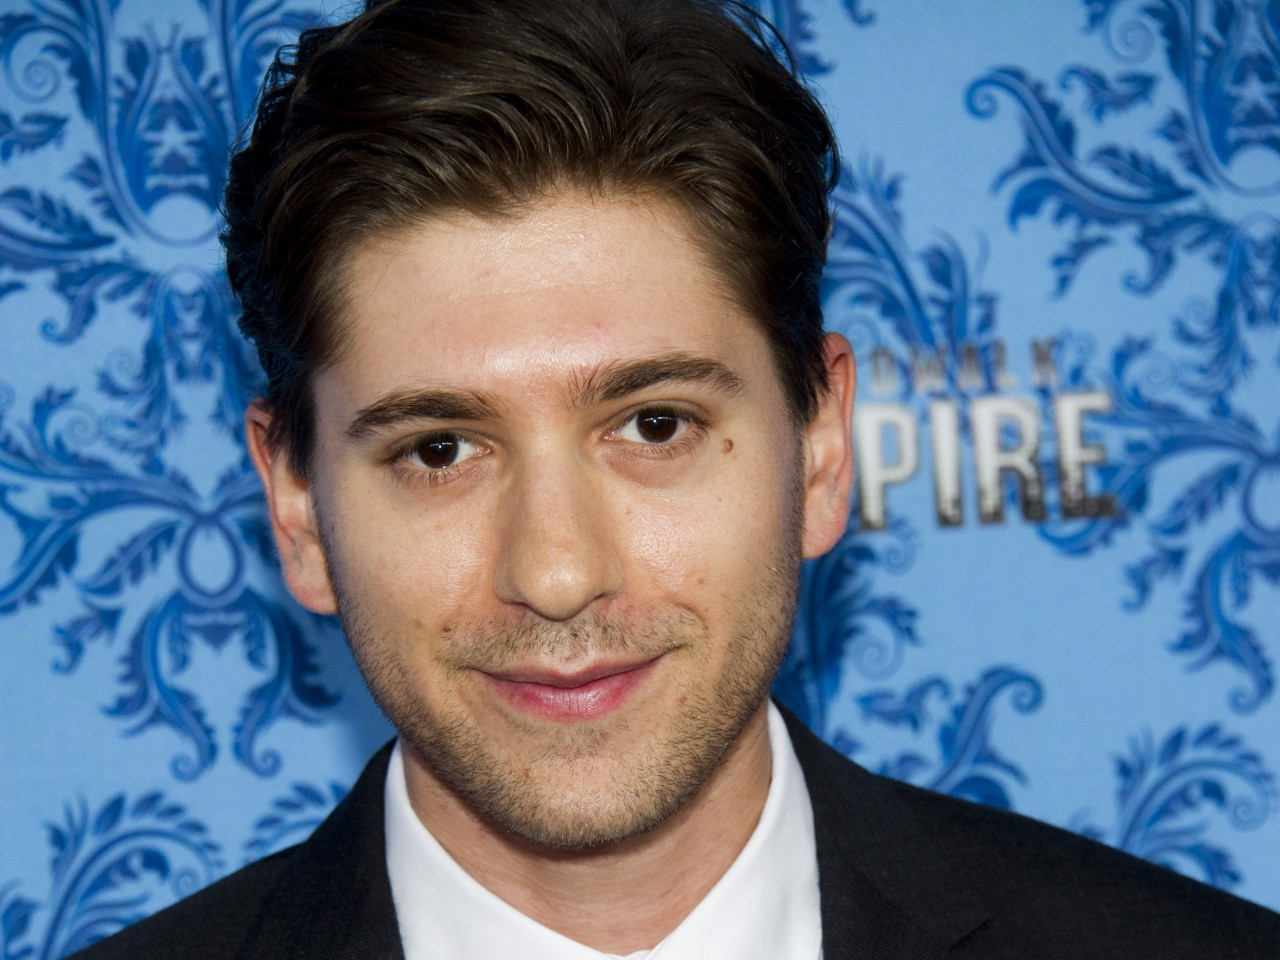 michael zegen girlfriendmichael zegen height, michael zegen instagram, michael zegen and emily kinney, michael zegen, michael zegen age, michael zegen twitter, michael zegen rescue me, michael zegen facebook, michael zegen jon bernthal, michael zegen 2015, michael zegen walking dead, michael zegen boardwalk empire, michael zegen girlfriend, michael zegen imdb, michael zegen interview, michael zegen shirtless, michael zegen tumblr, michael zegen net worth, michael zegen a view from the bridge, michael zegen frances ha